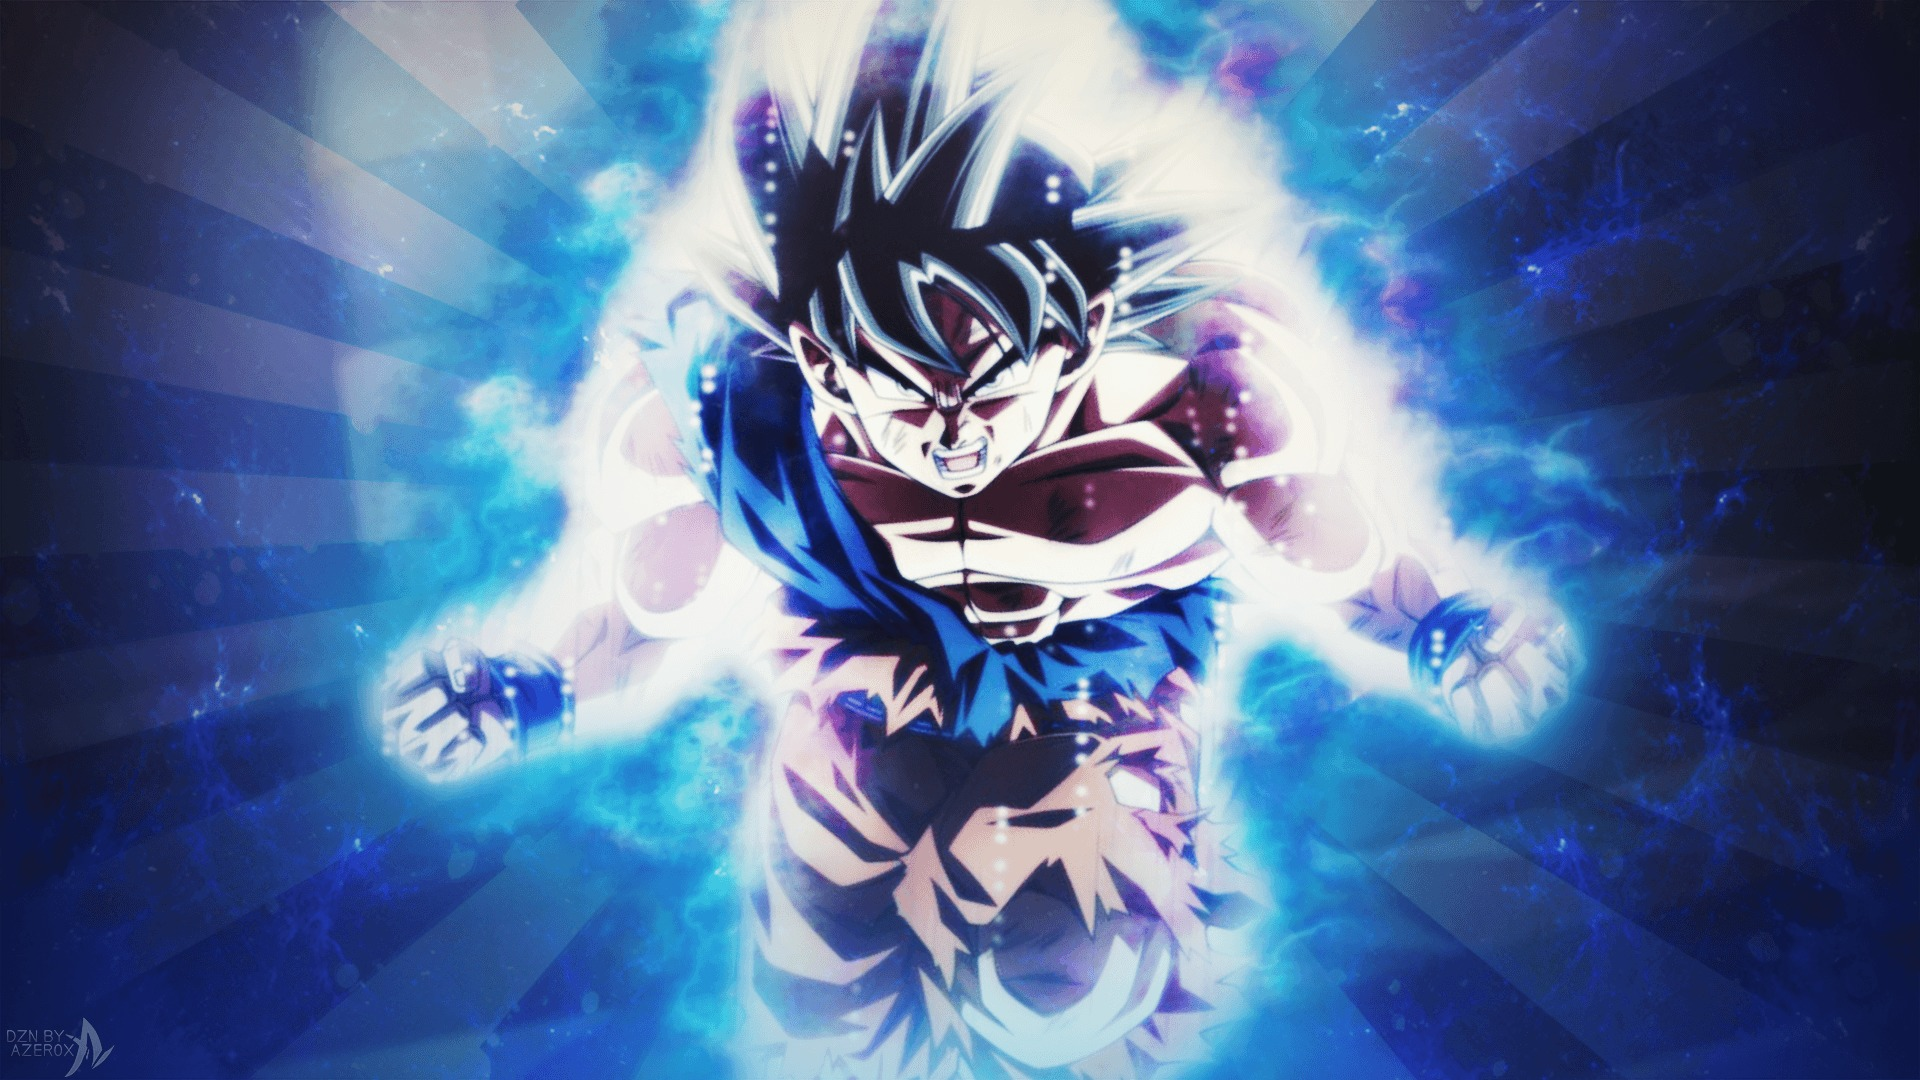 Dragon Ball Super Chapter 59 Release Date, Predictions Moro will Copy Goku and Vegeta's Powers